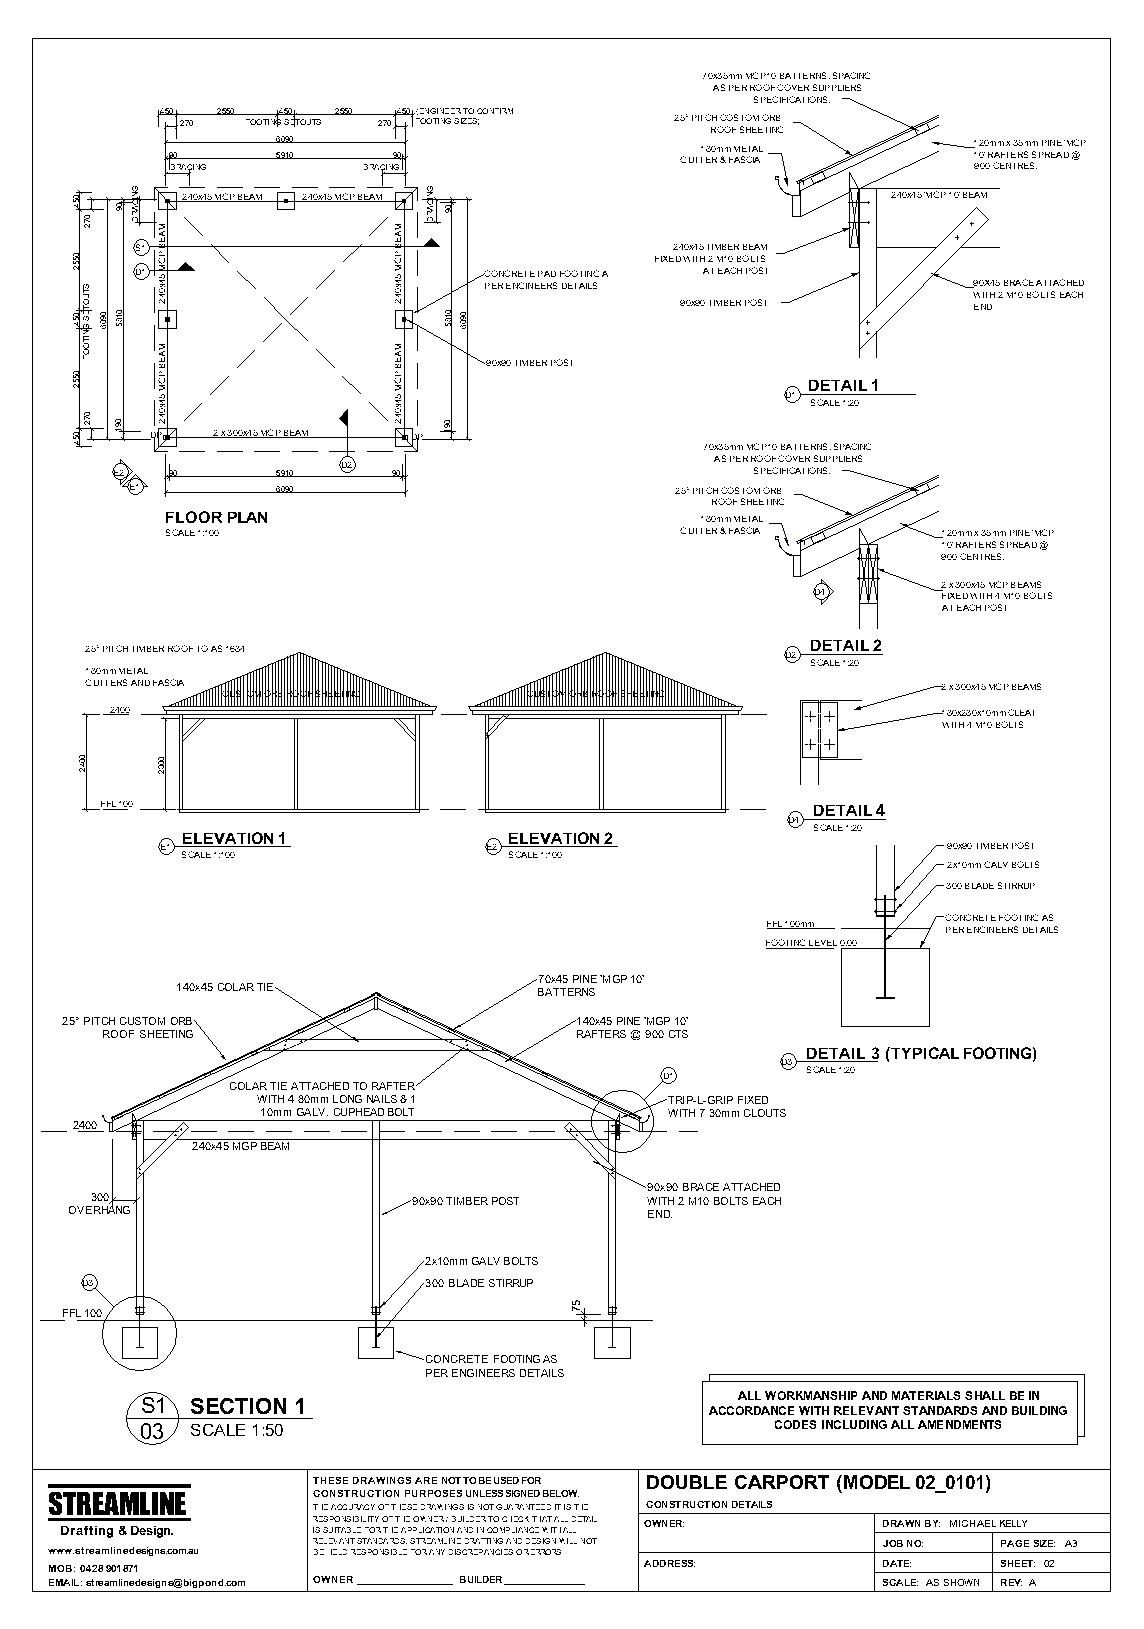 Download free carport plans building carport pinterest for Free garage plans online